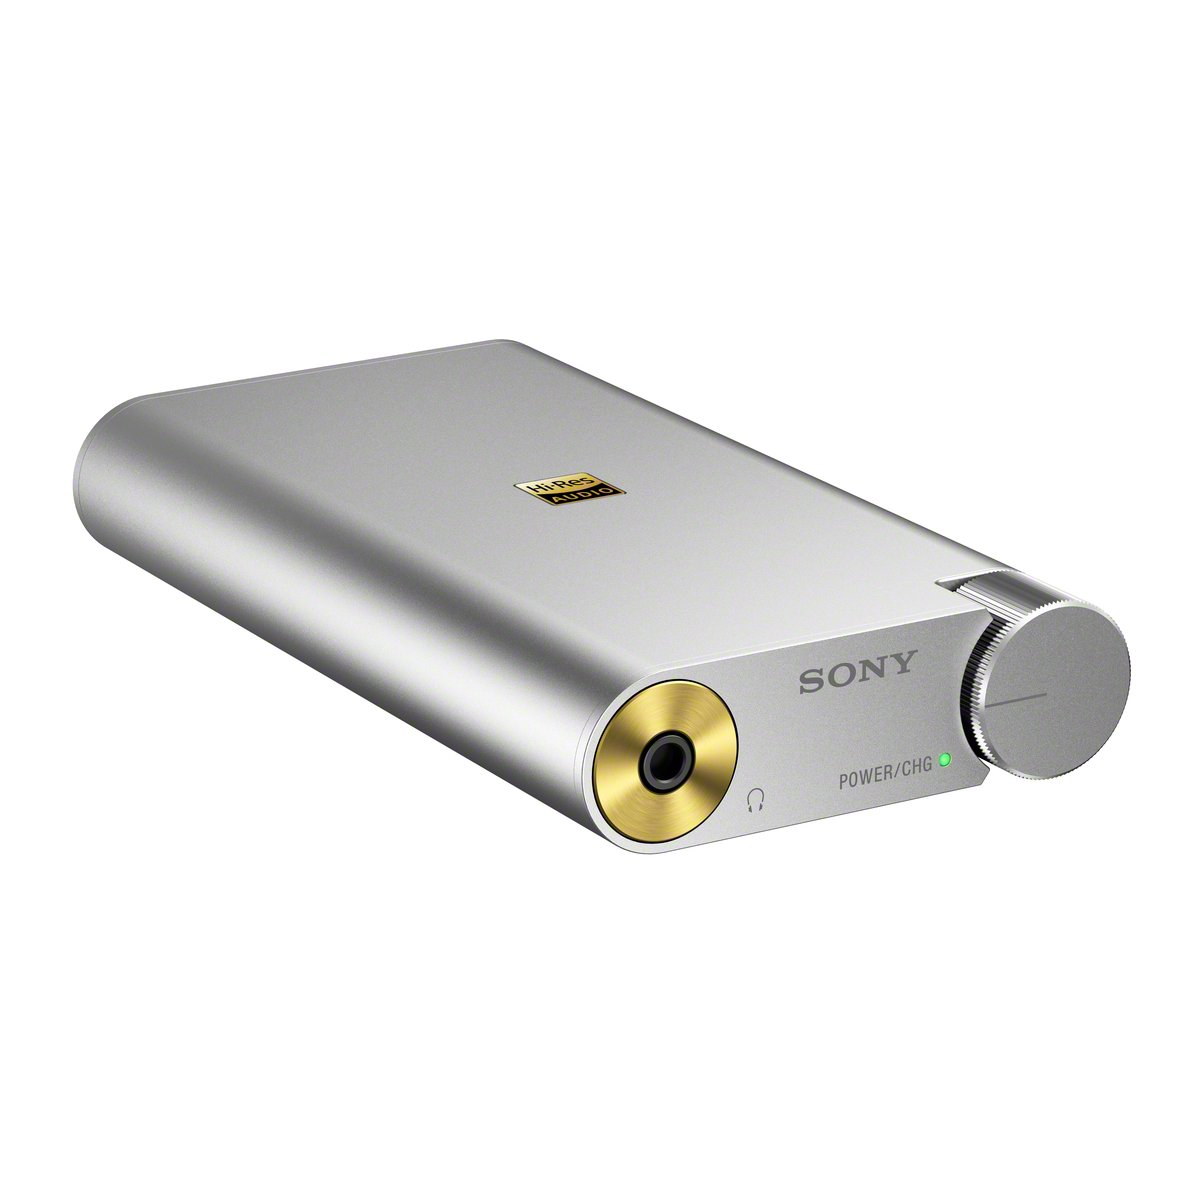 Sony PHA1A Portable Hi-Res DAC/Headphone Amplifier